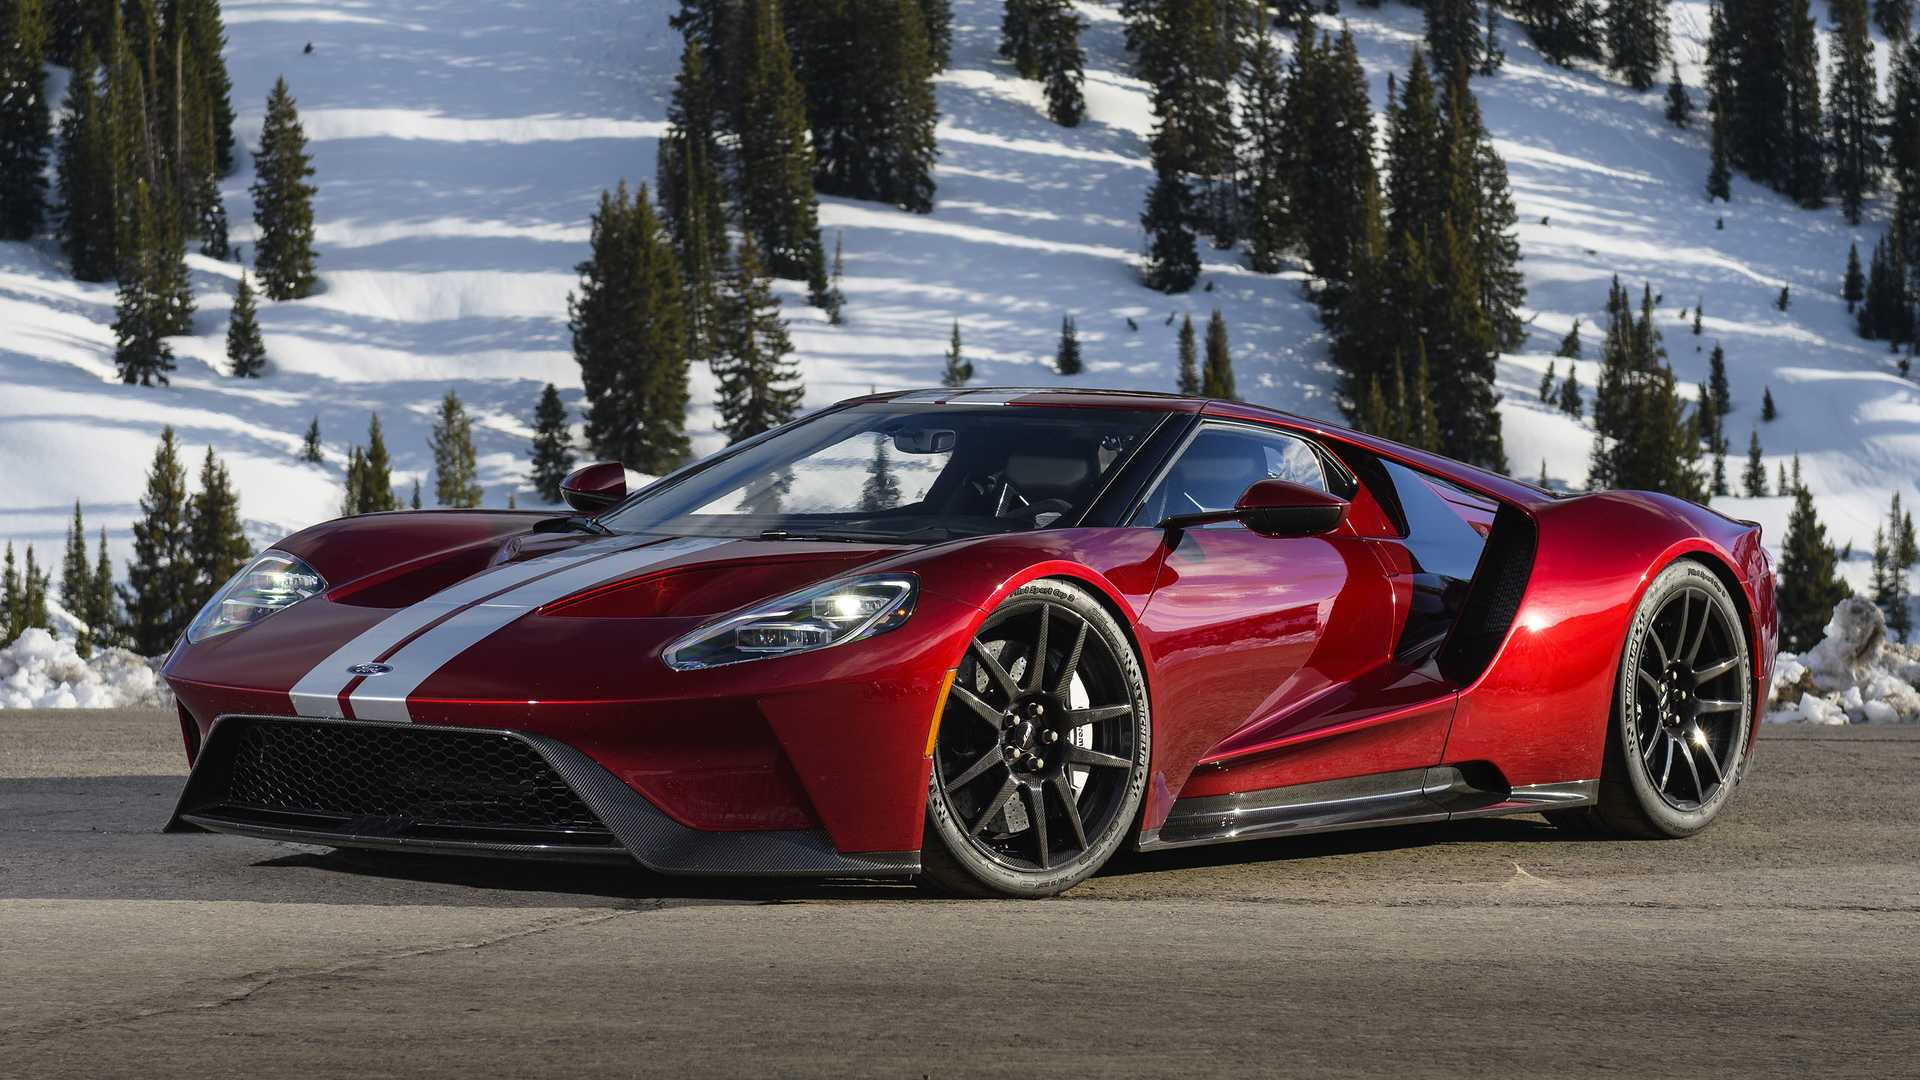 Ford GT Uses Same Gearbox As Mercedes-AMG GT